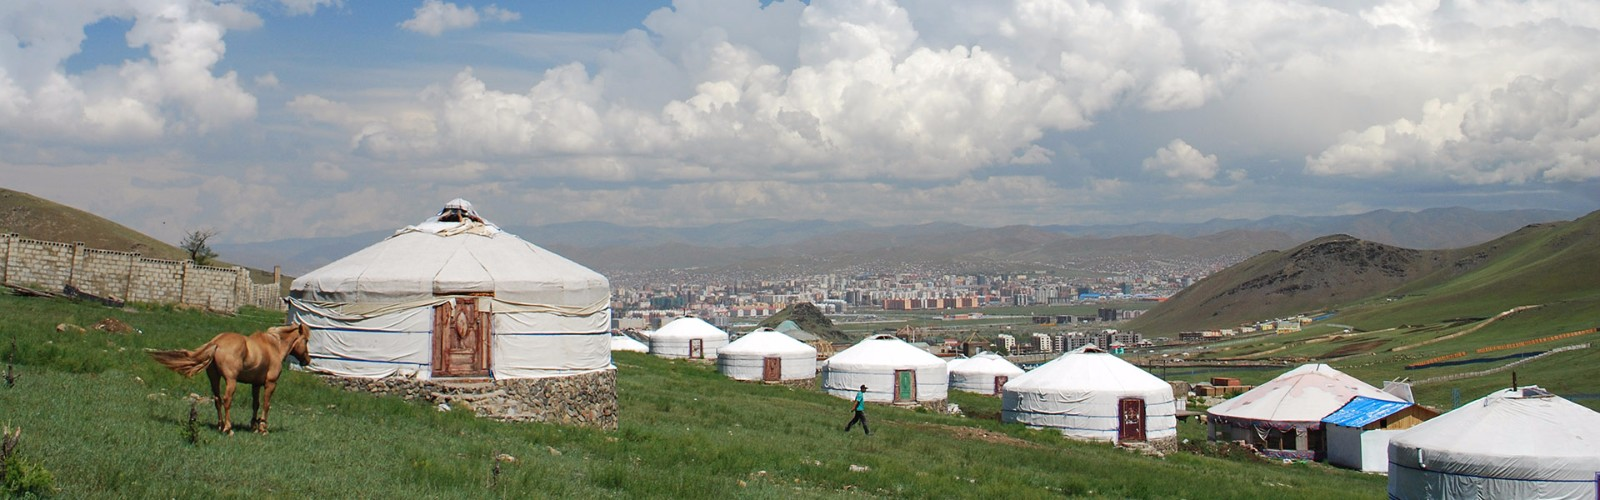 Ulaanbaatar City Stay Tour | Wendy Wu Tours